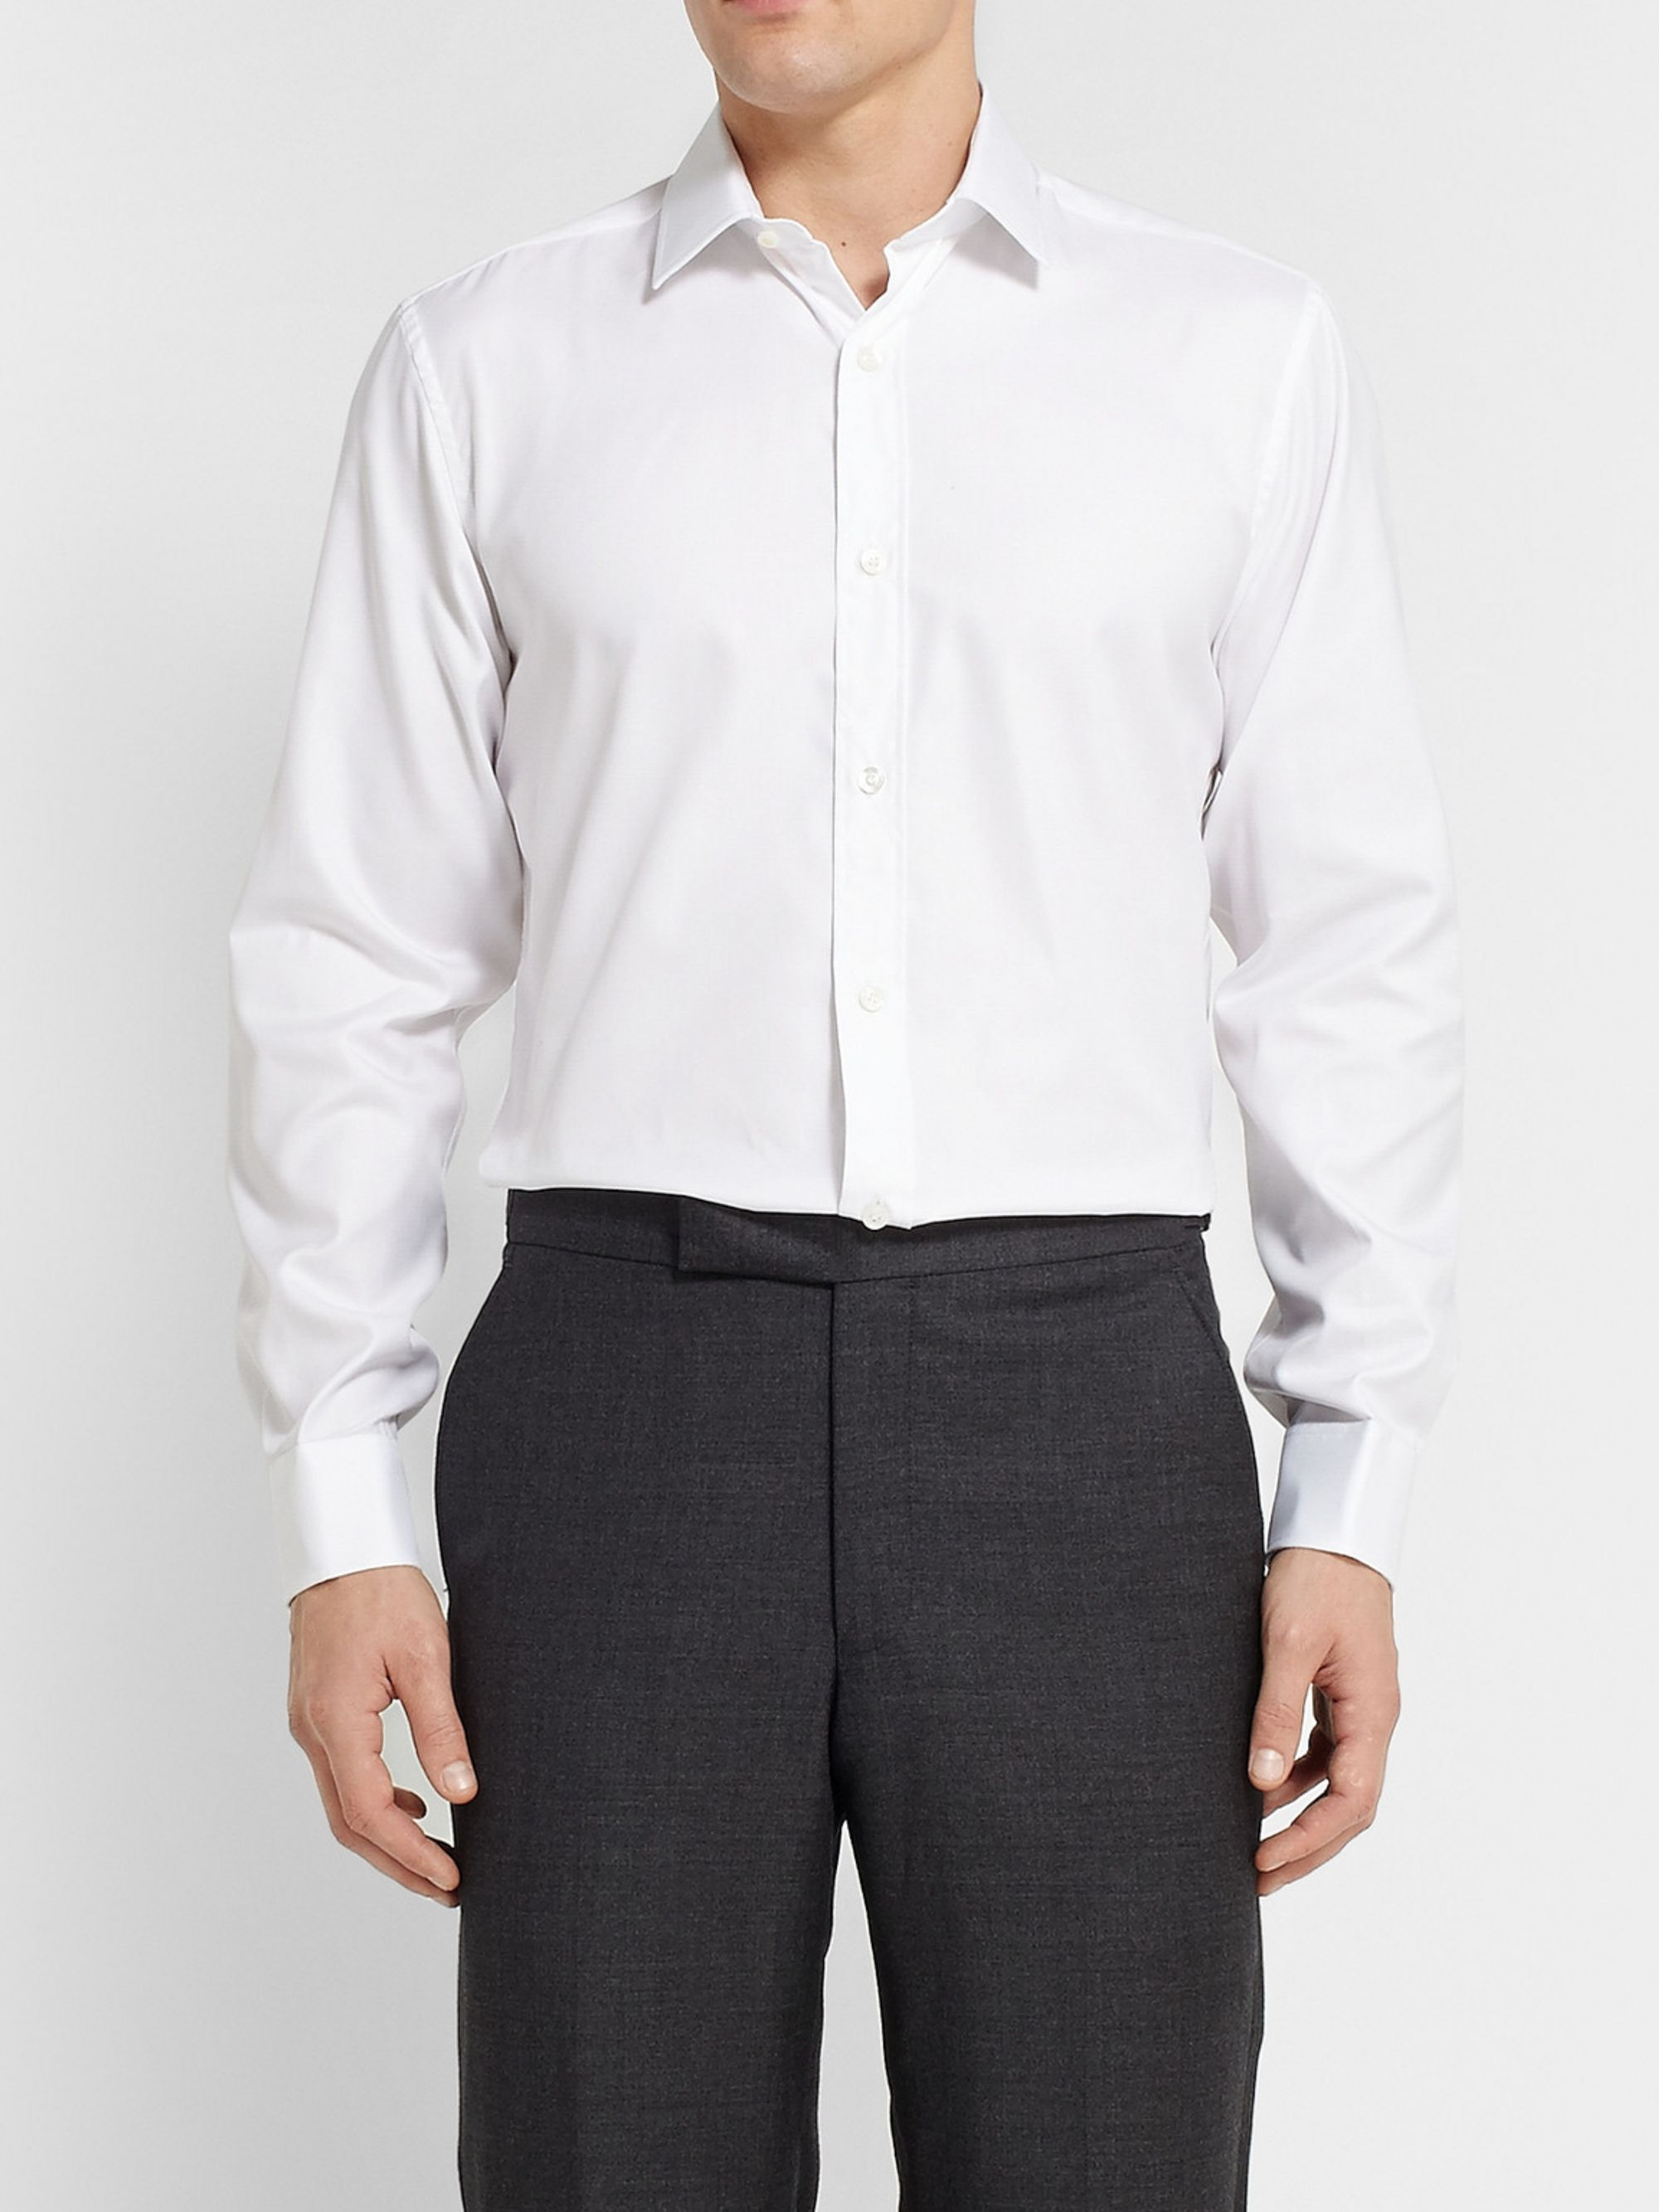 CHARVET White Royal Slim-Fit Cotton Oxford Shirt